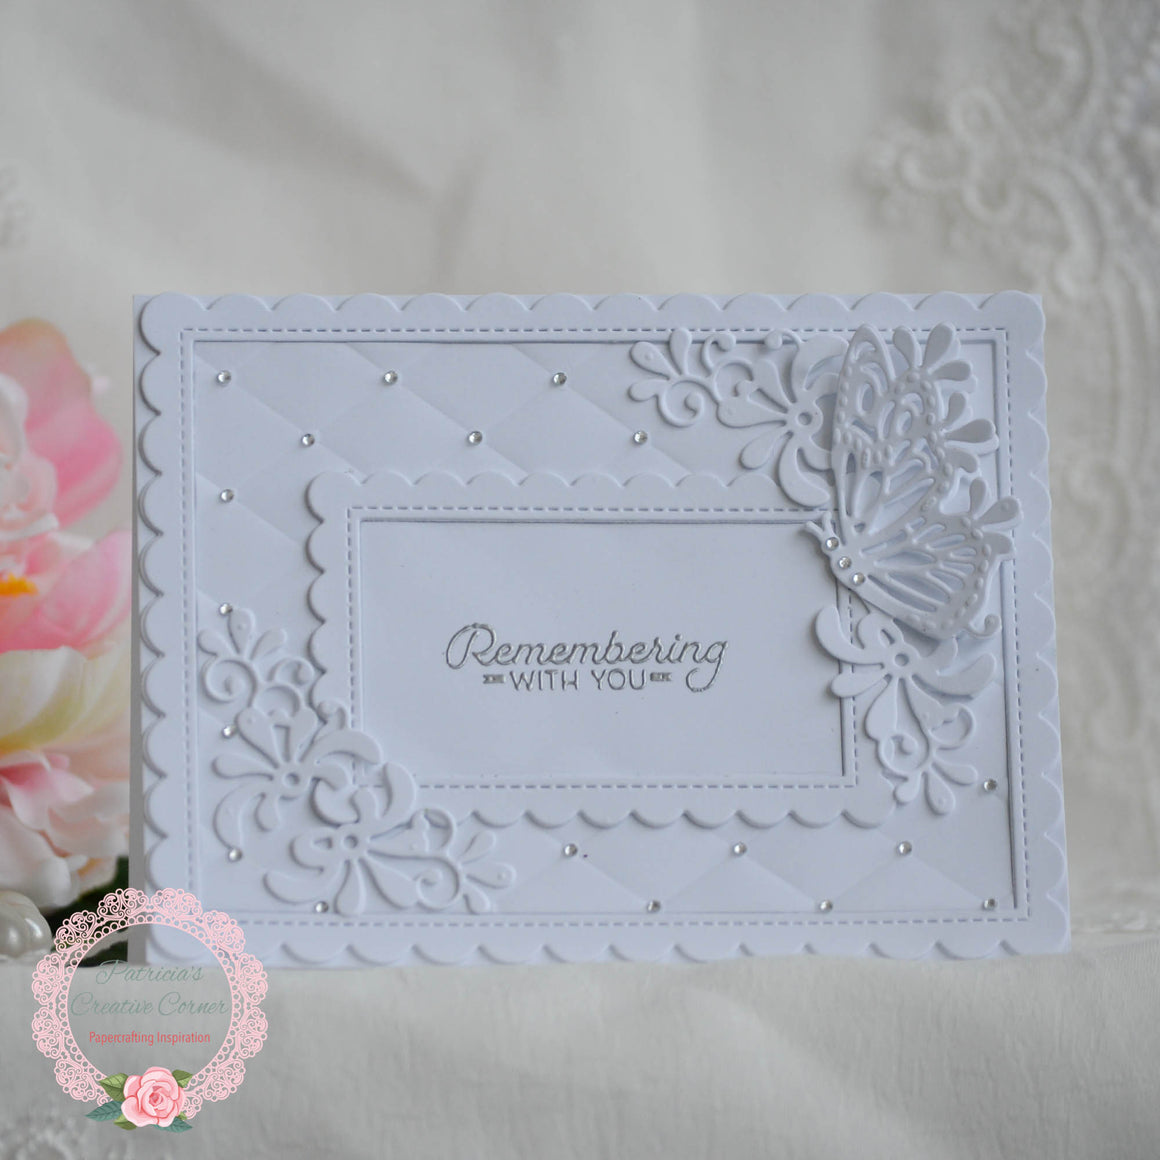 Handcrafted Sympathy Cards - NZ Gift Hutt